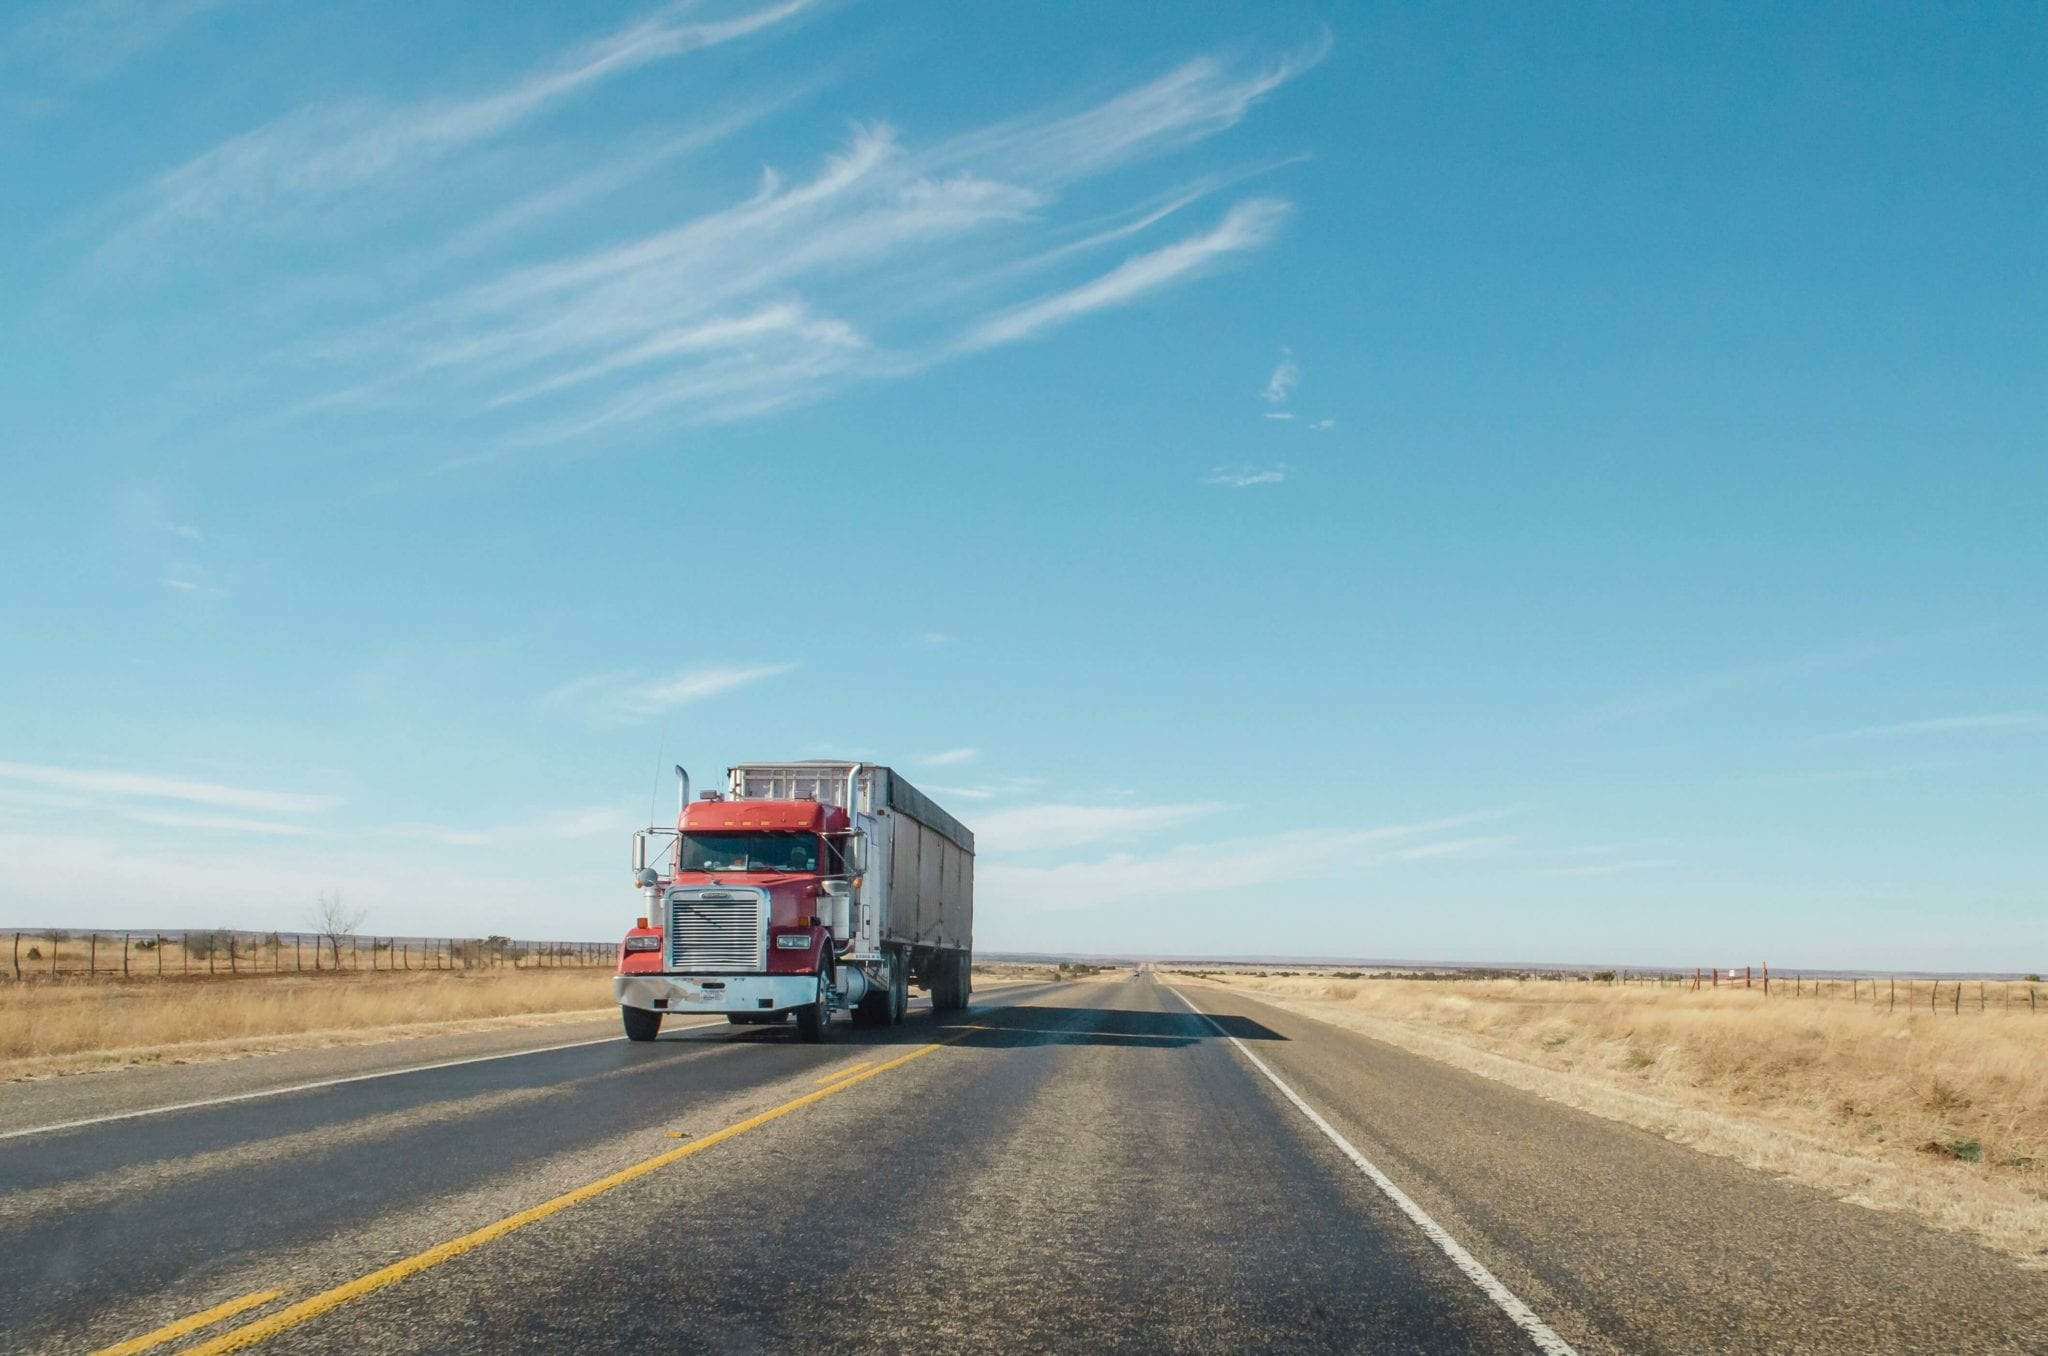 How likely am I to die in a Texas truck accident?